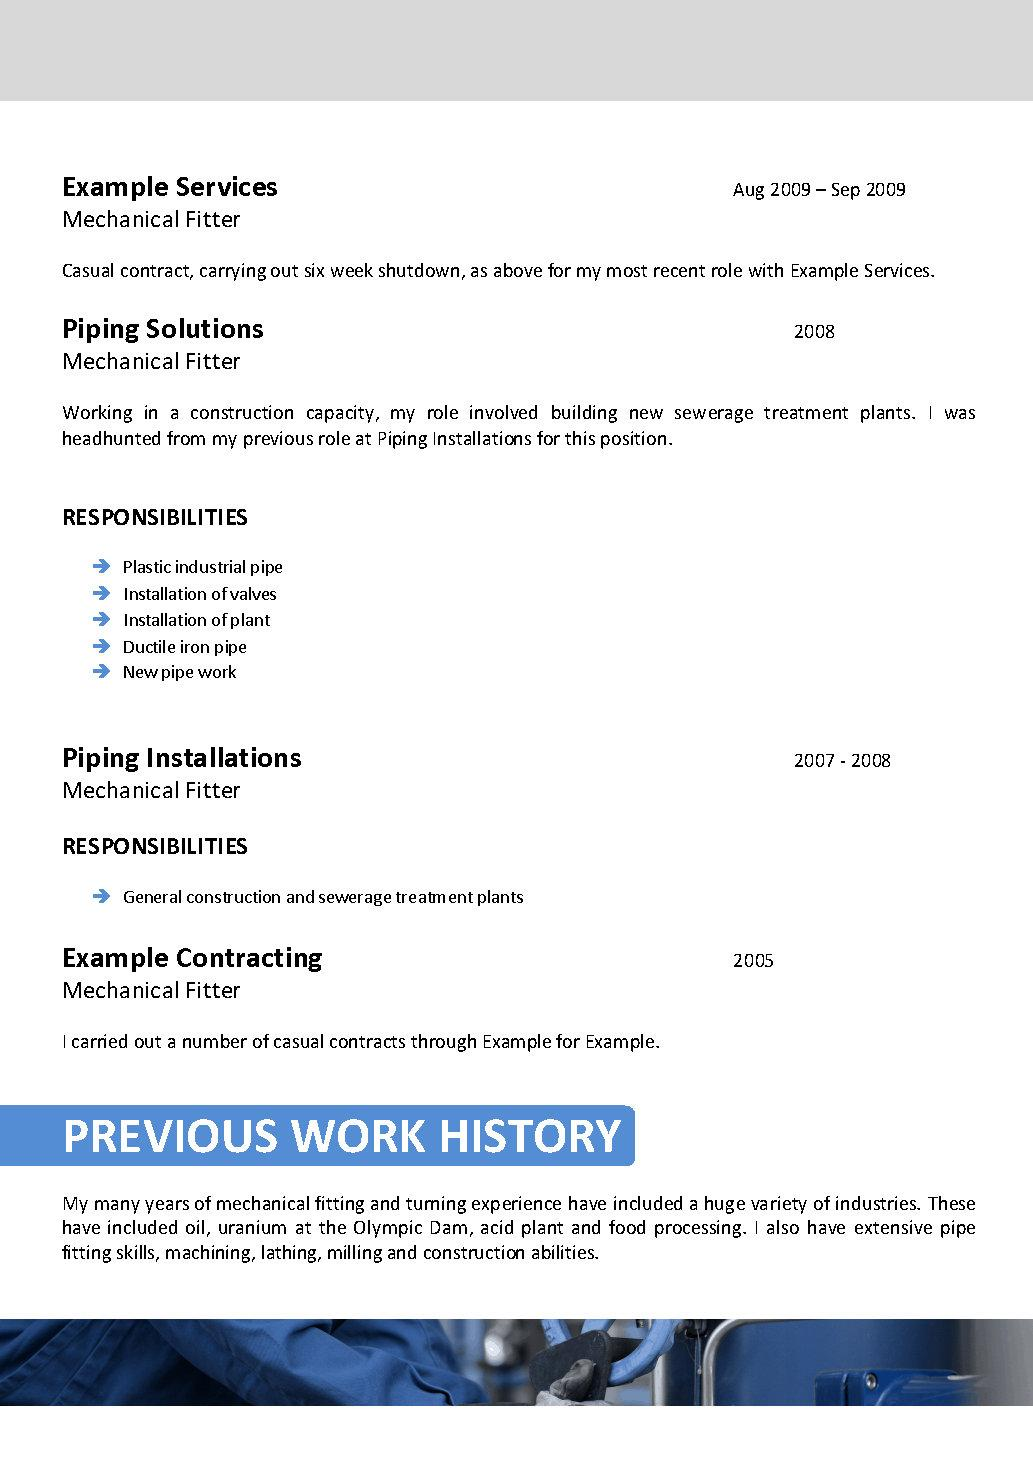 yes please convert my existing resume into this new resume template